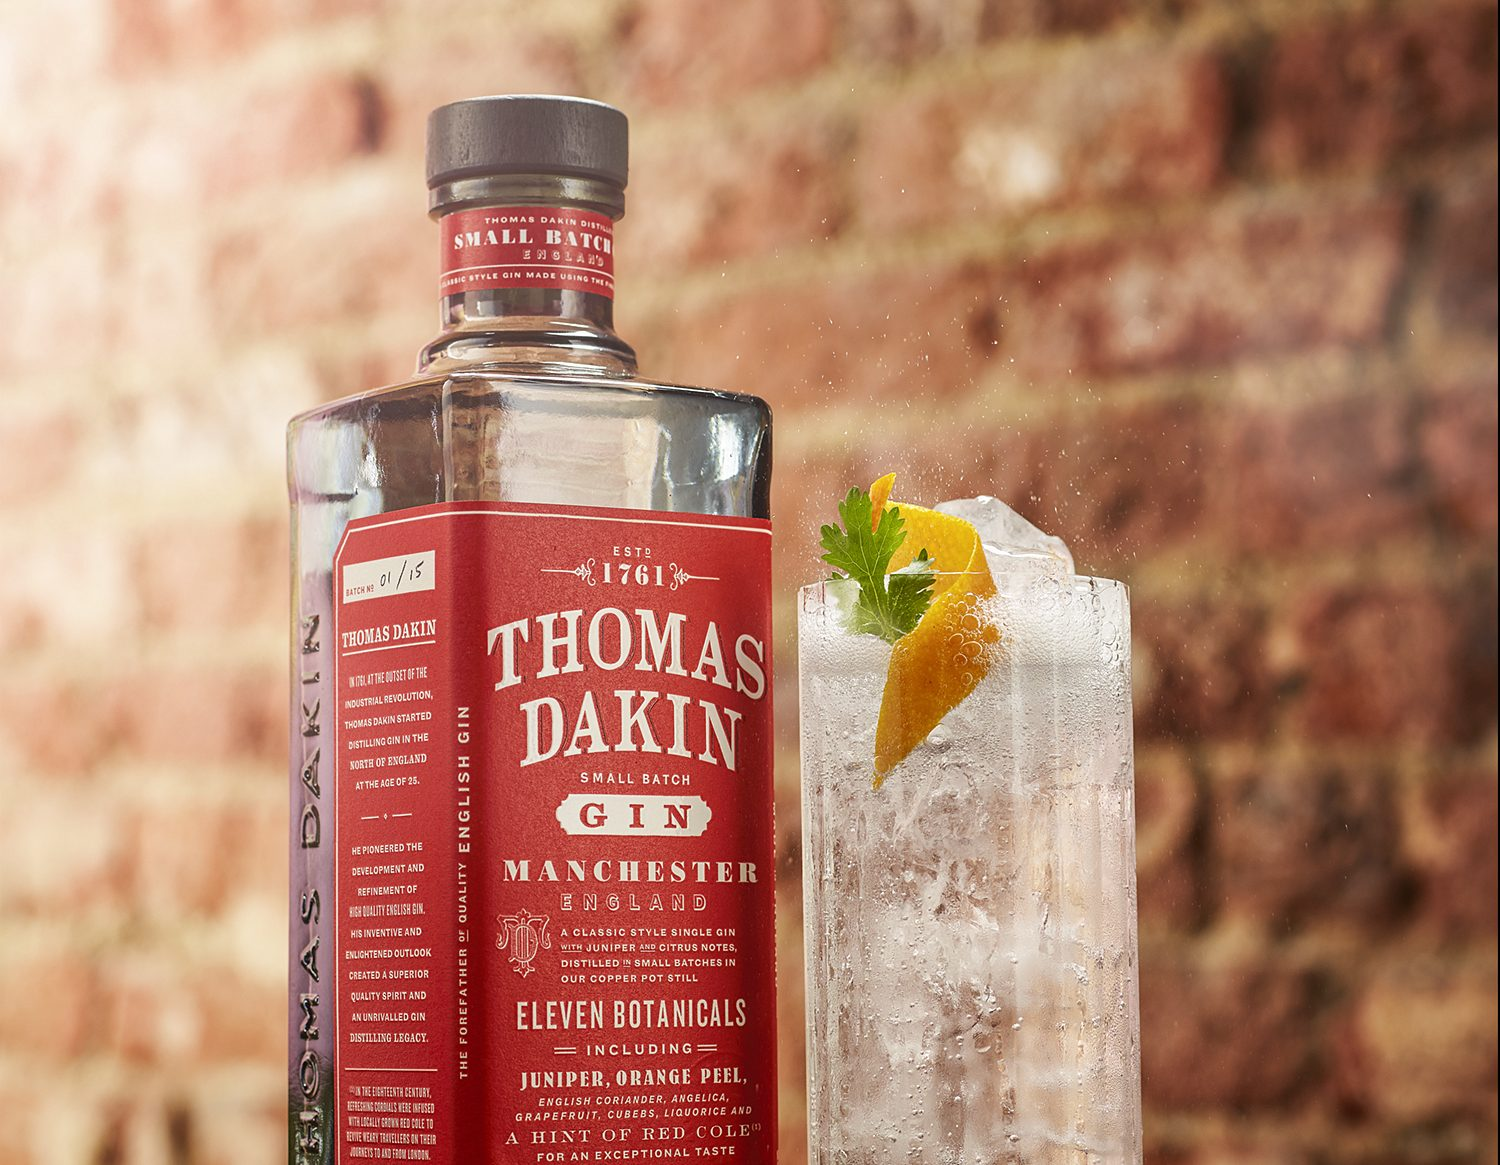 Thomas Dakin honoured with new small-batch gin